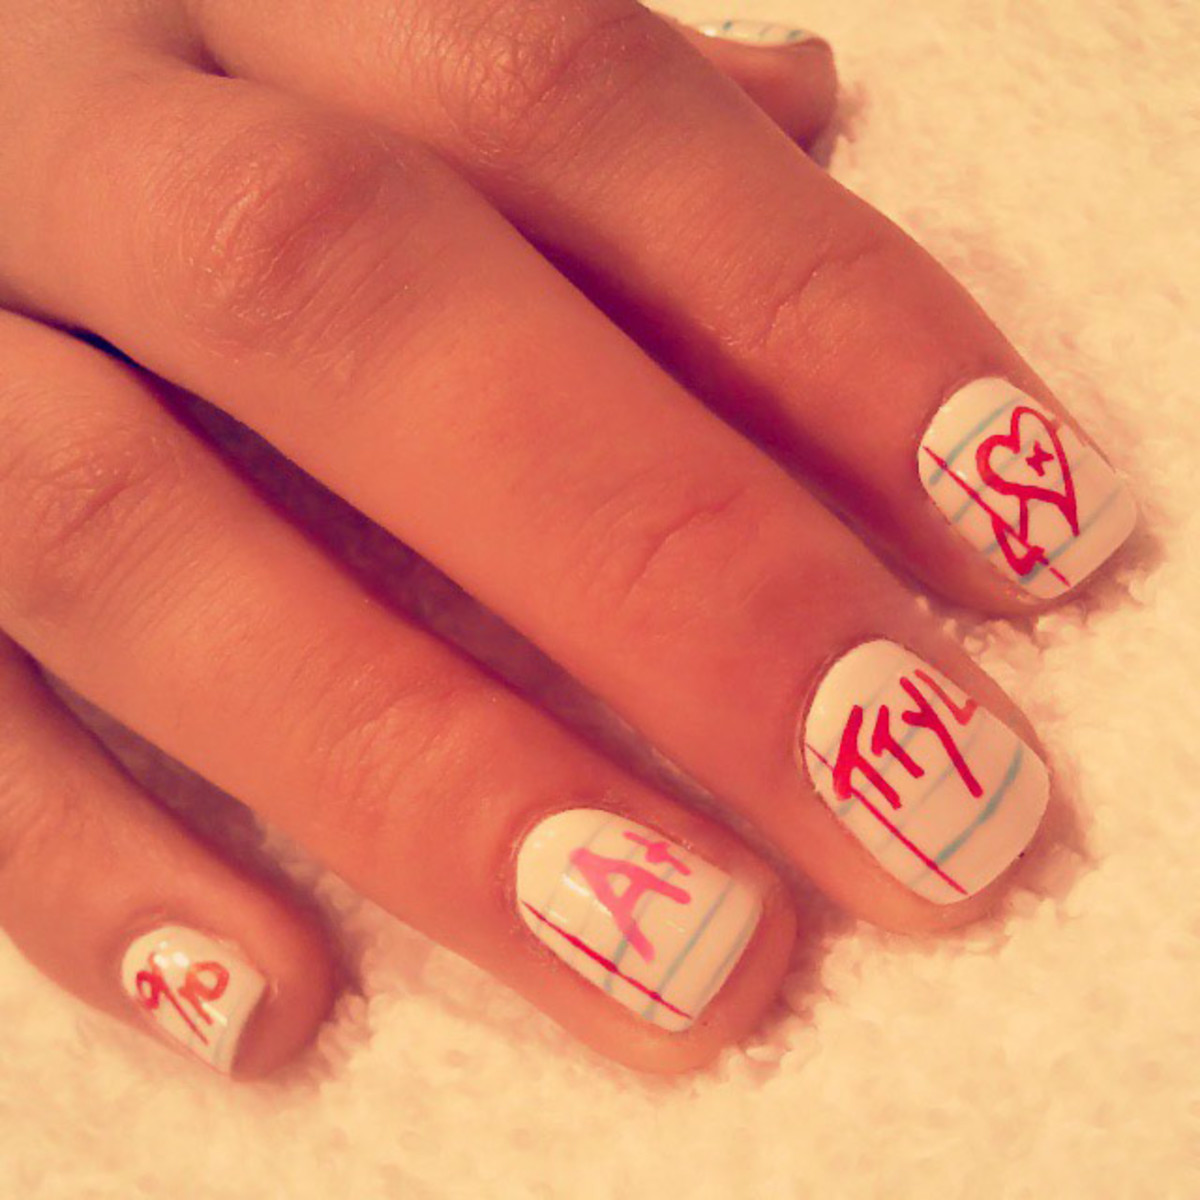 Notebook nail art by Mani Melissa Forrest